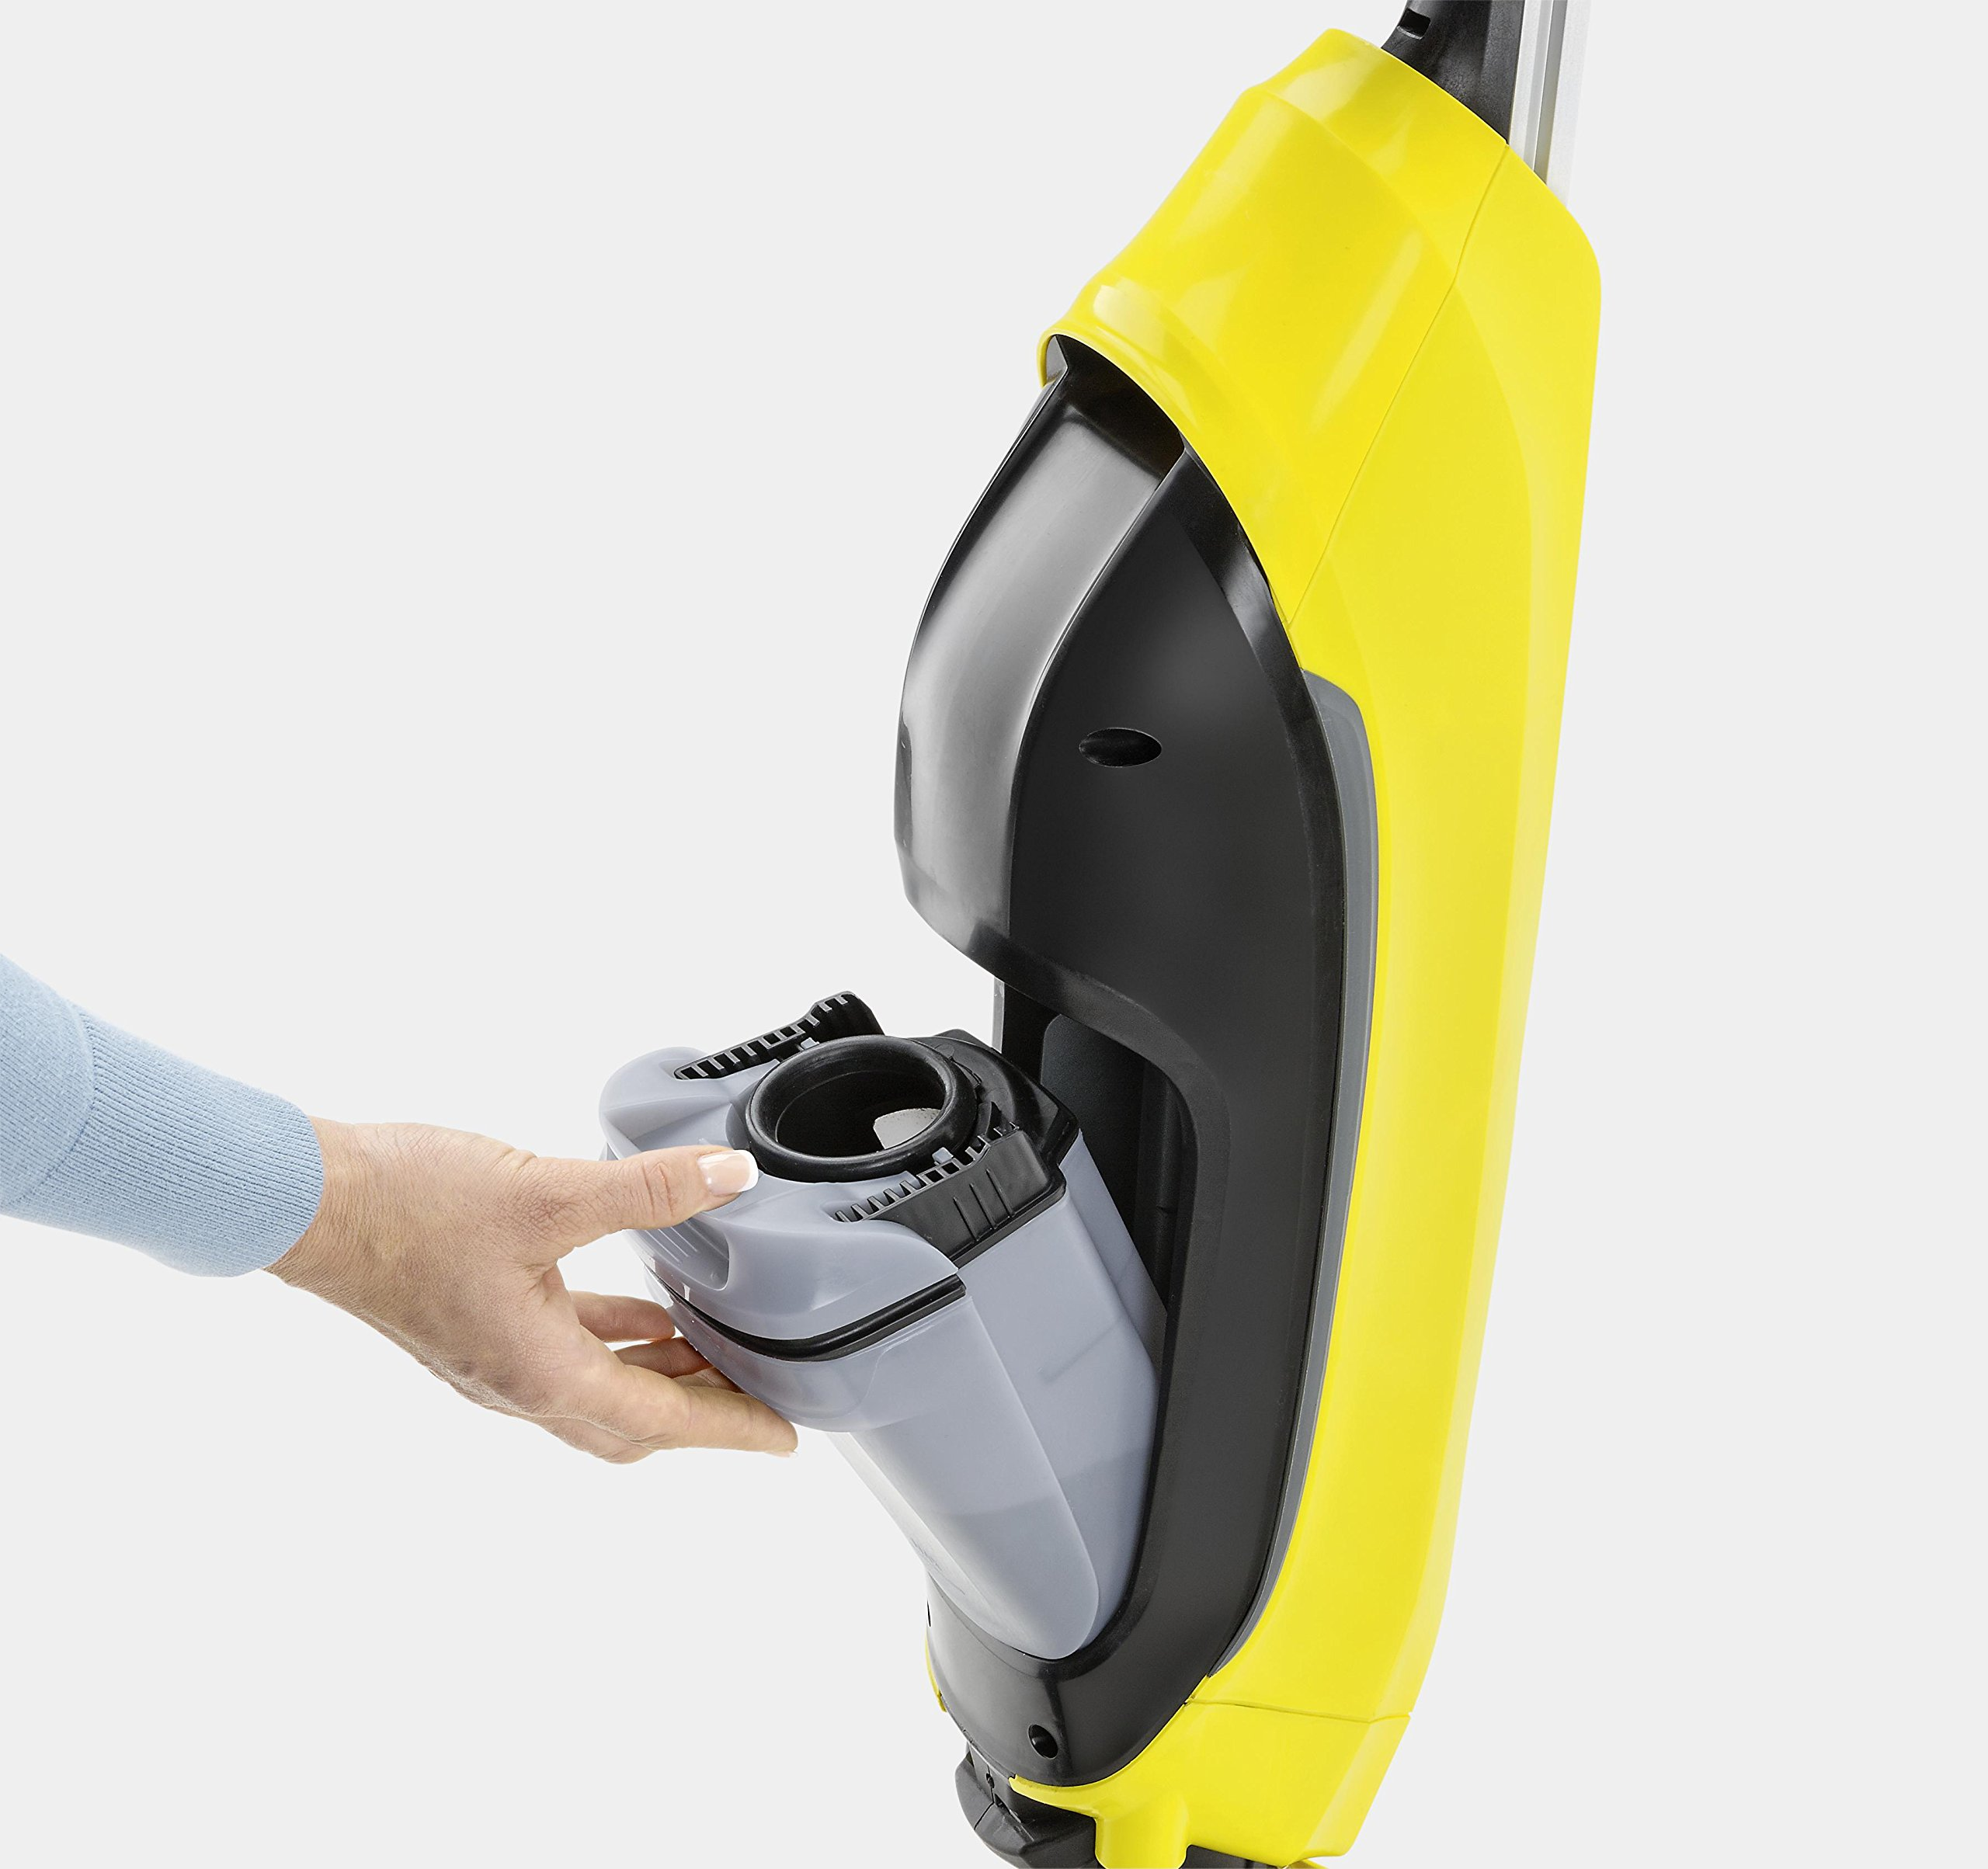 KARCHER FC5 Hard Floor Cleaner - Yellow by Karcher (Image #10)